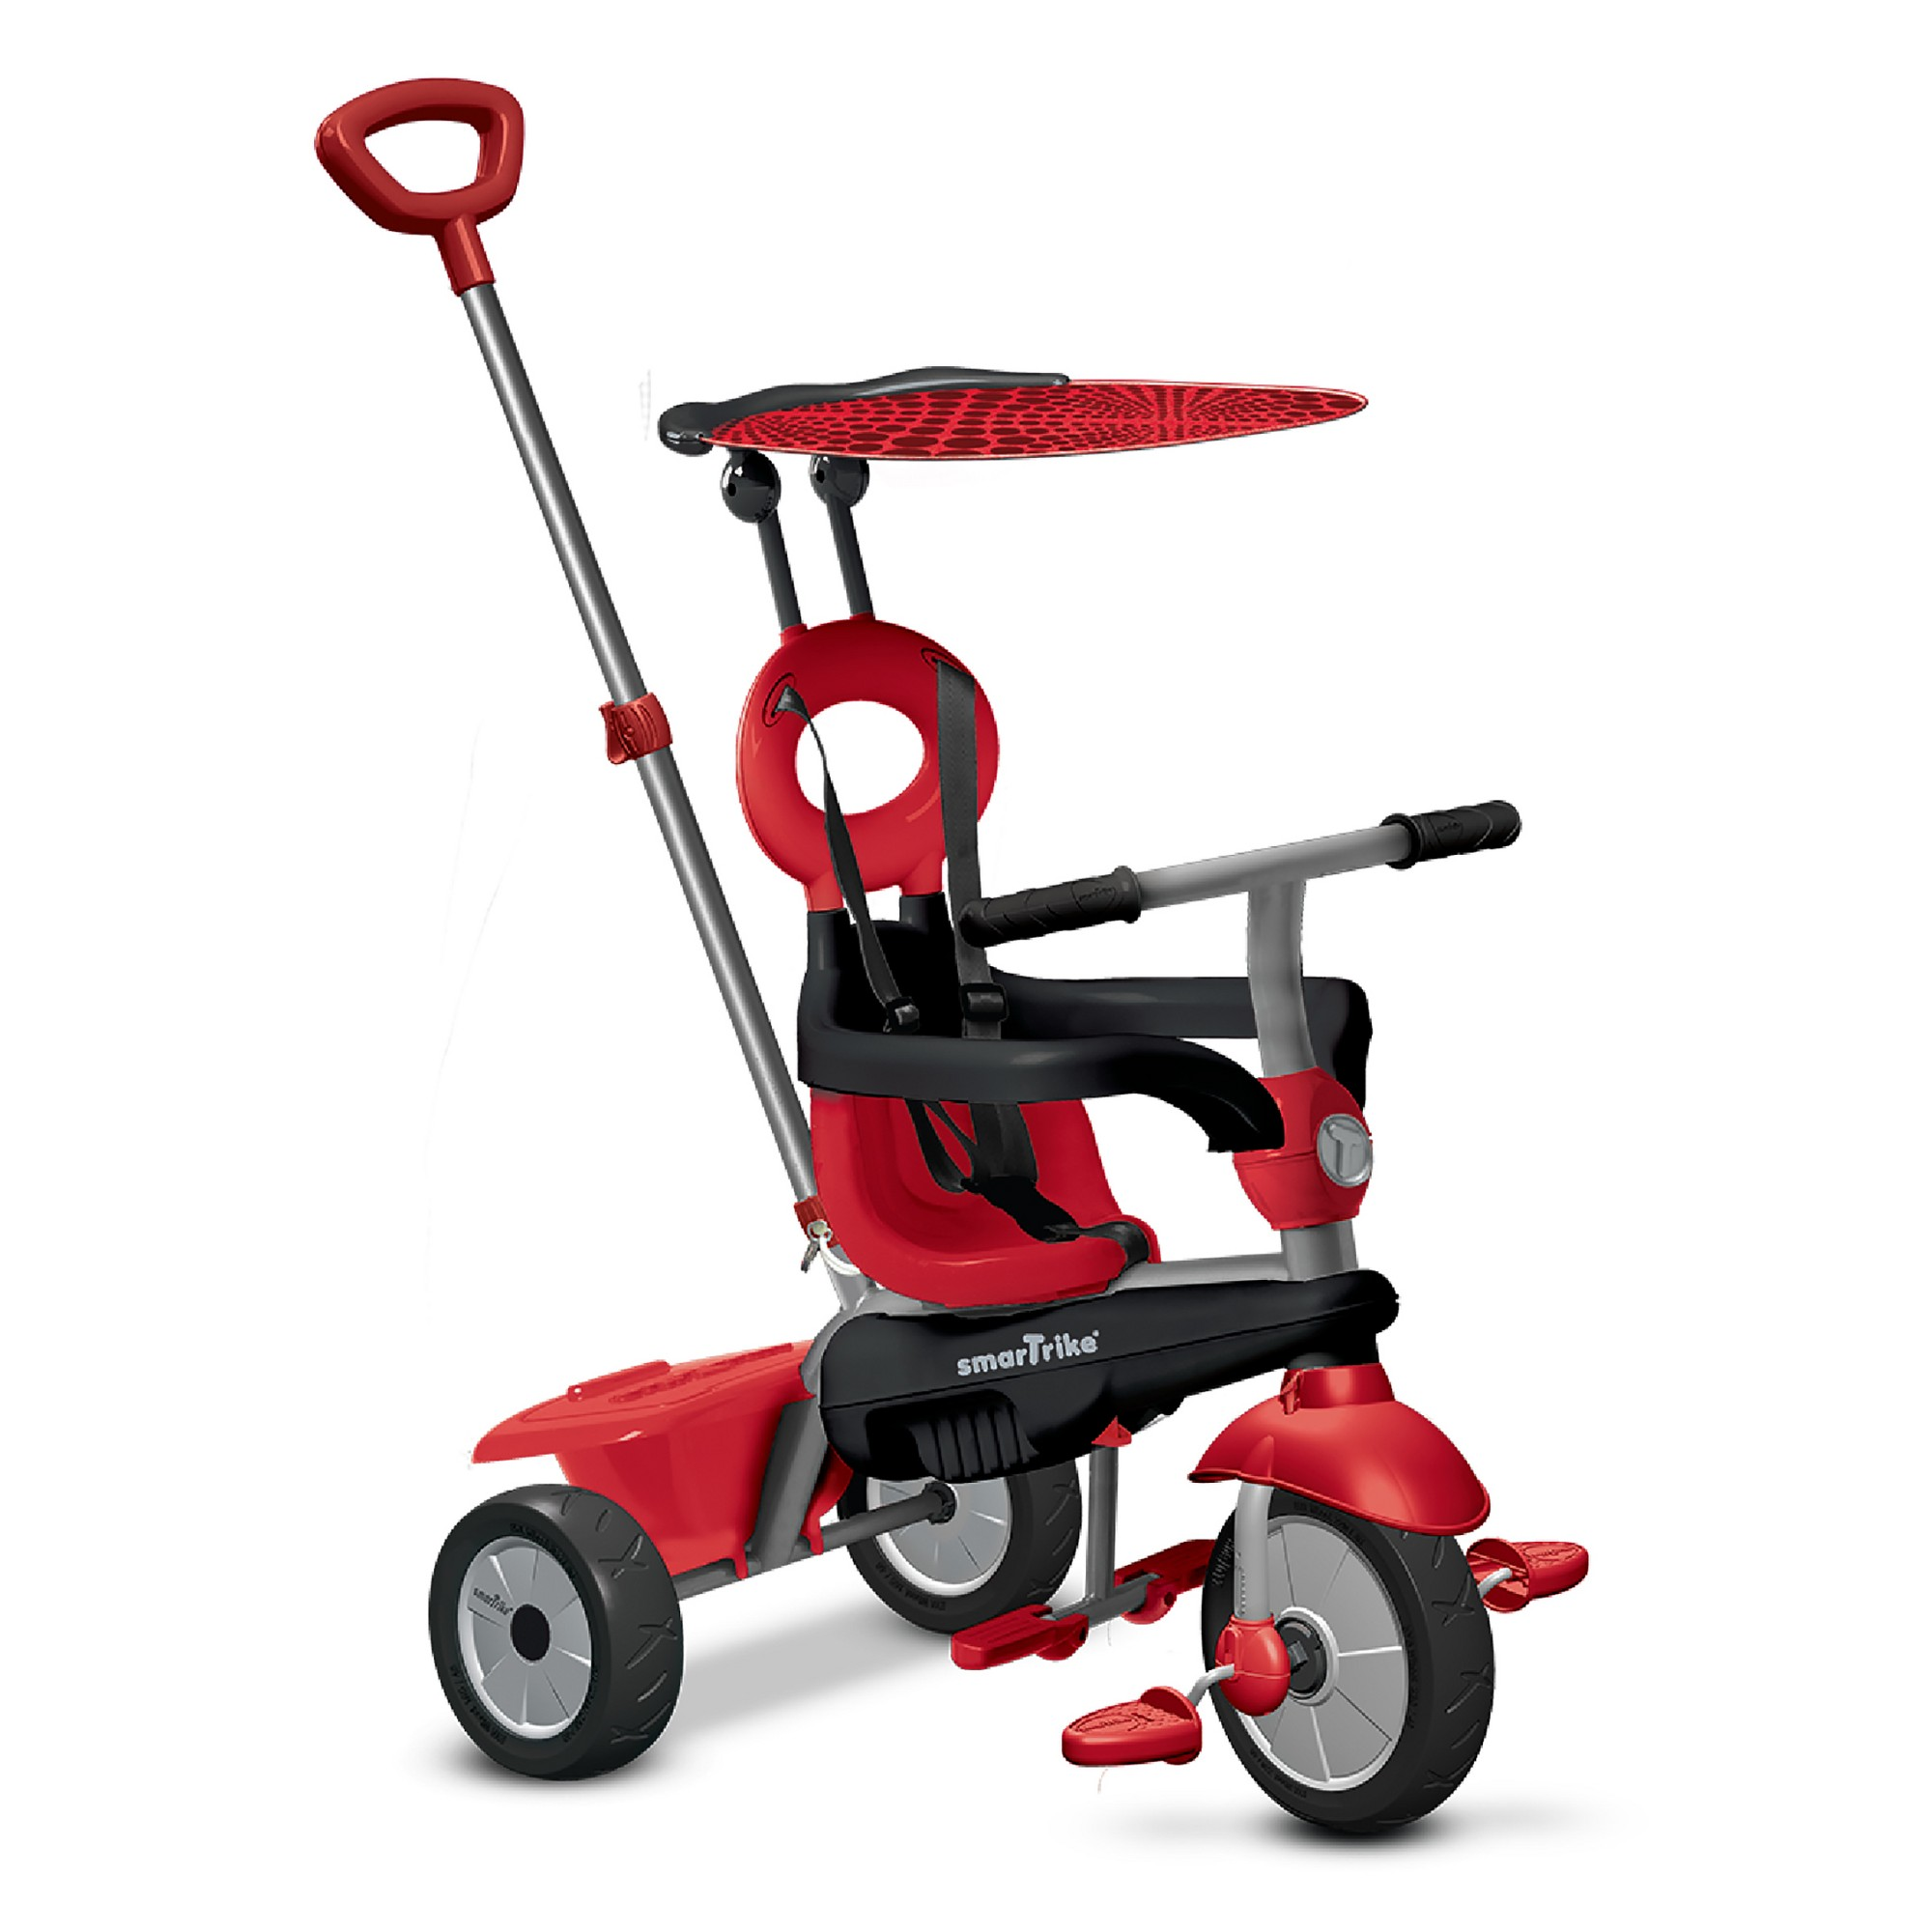 cc0aba307d0 smarTrike Zoom 3-in-1- Red | Products | Tricycle, Kids trike, Push trike